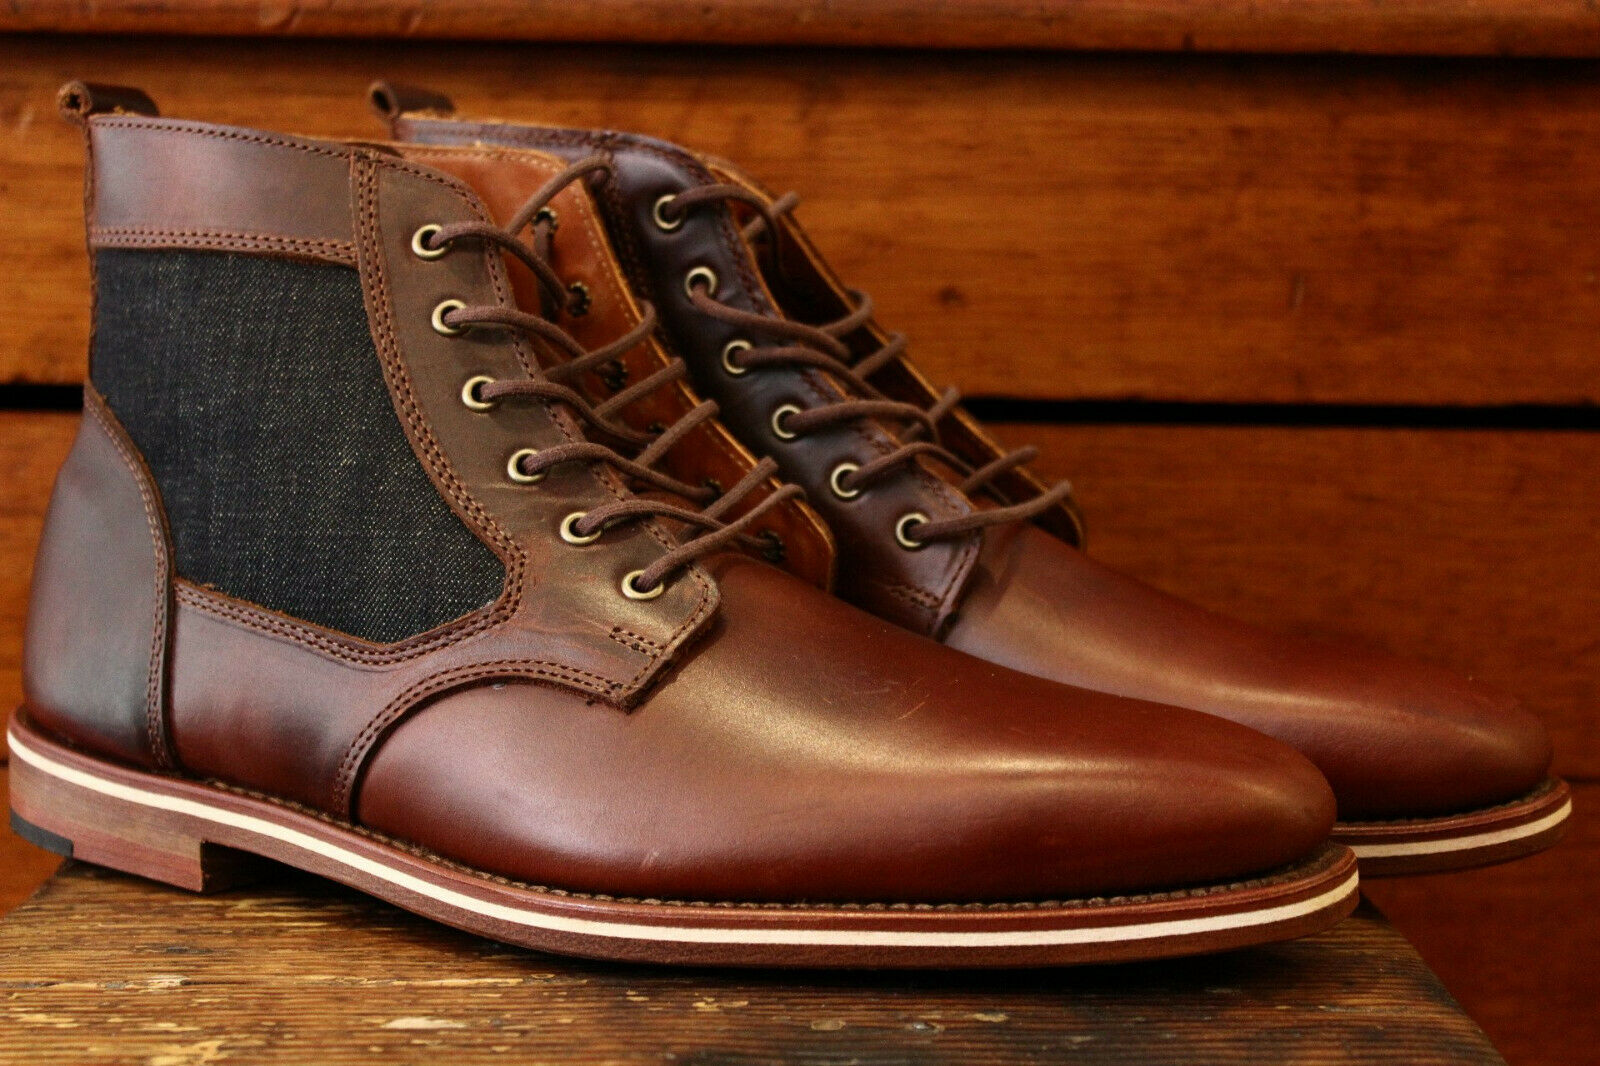 HELM Boots Men's Lace-up Leather Brown  - Sam Size 7.5